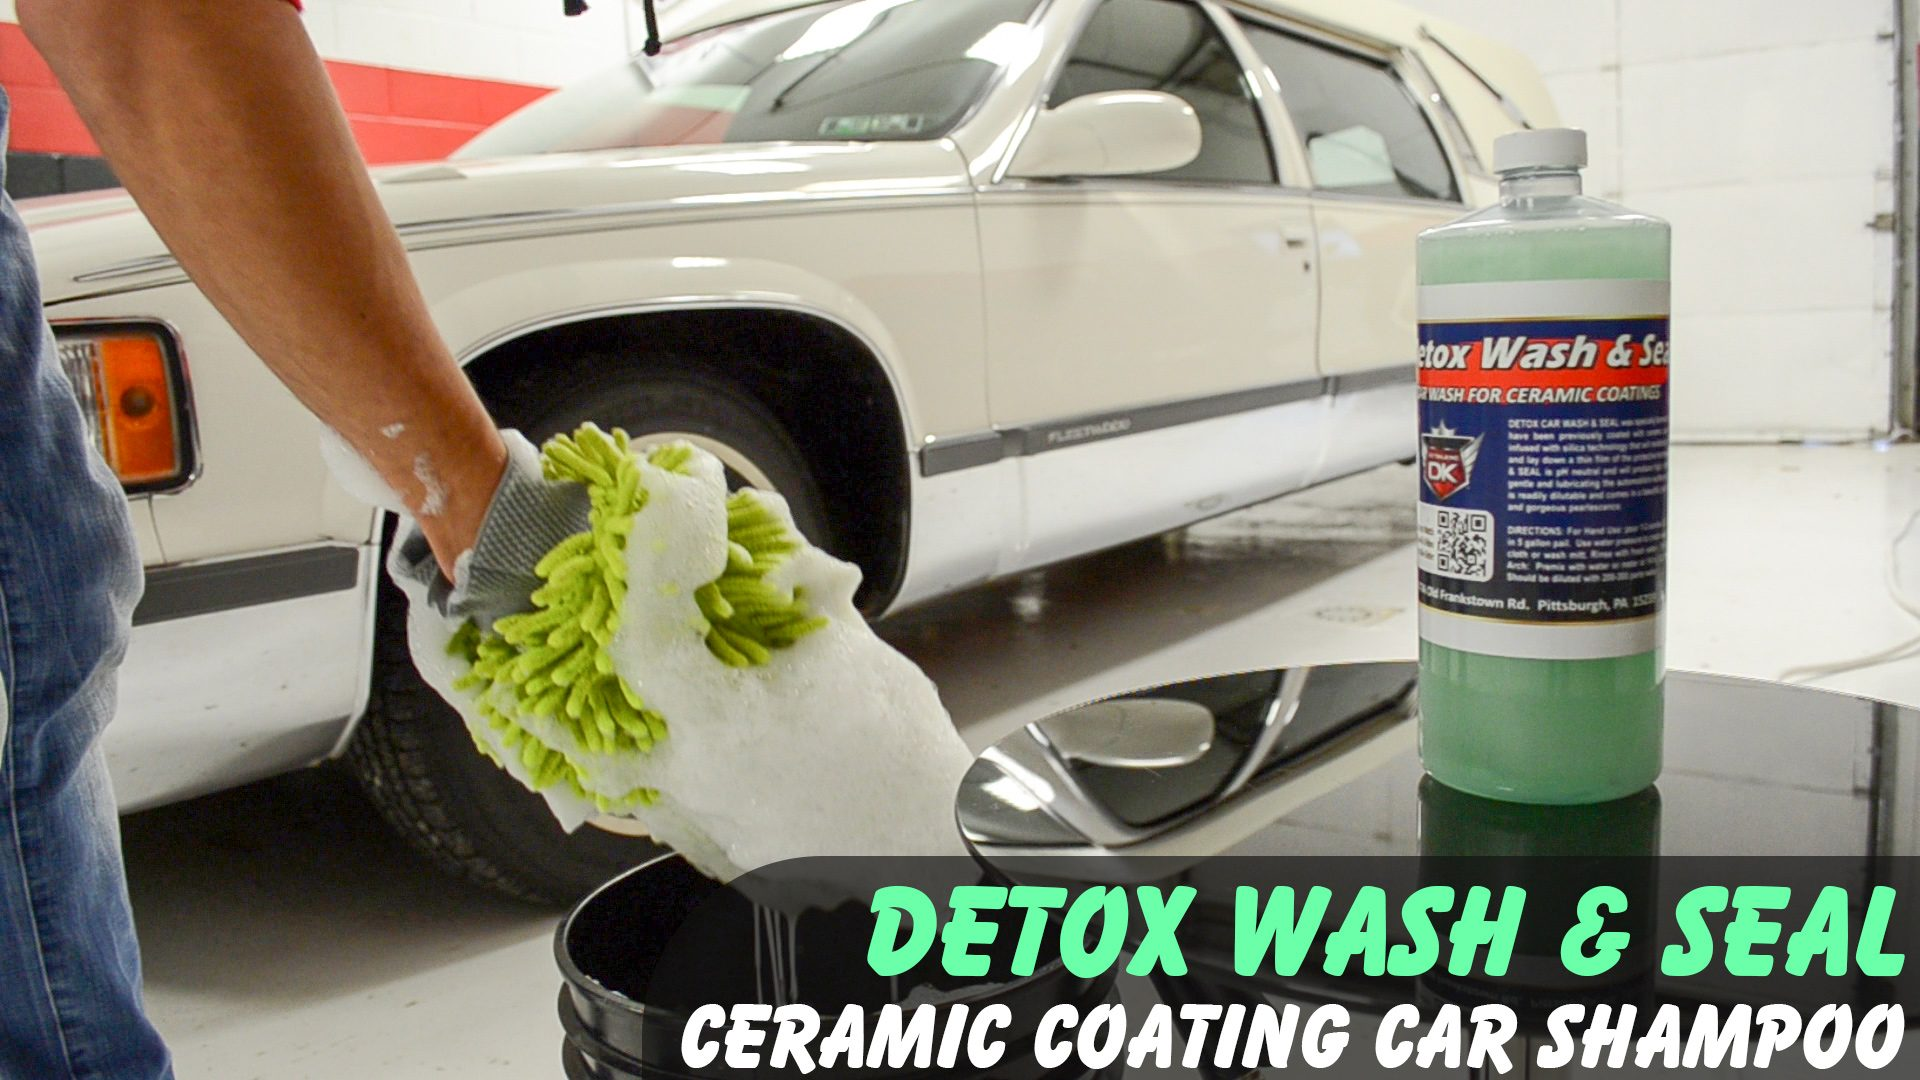 Detox Wash & Seal for Ceramic Coatings